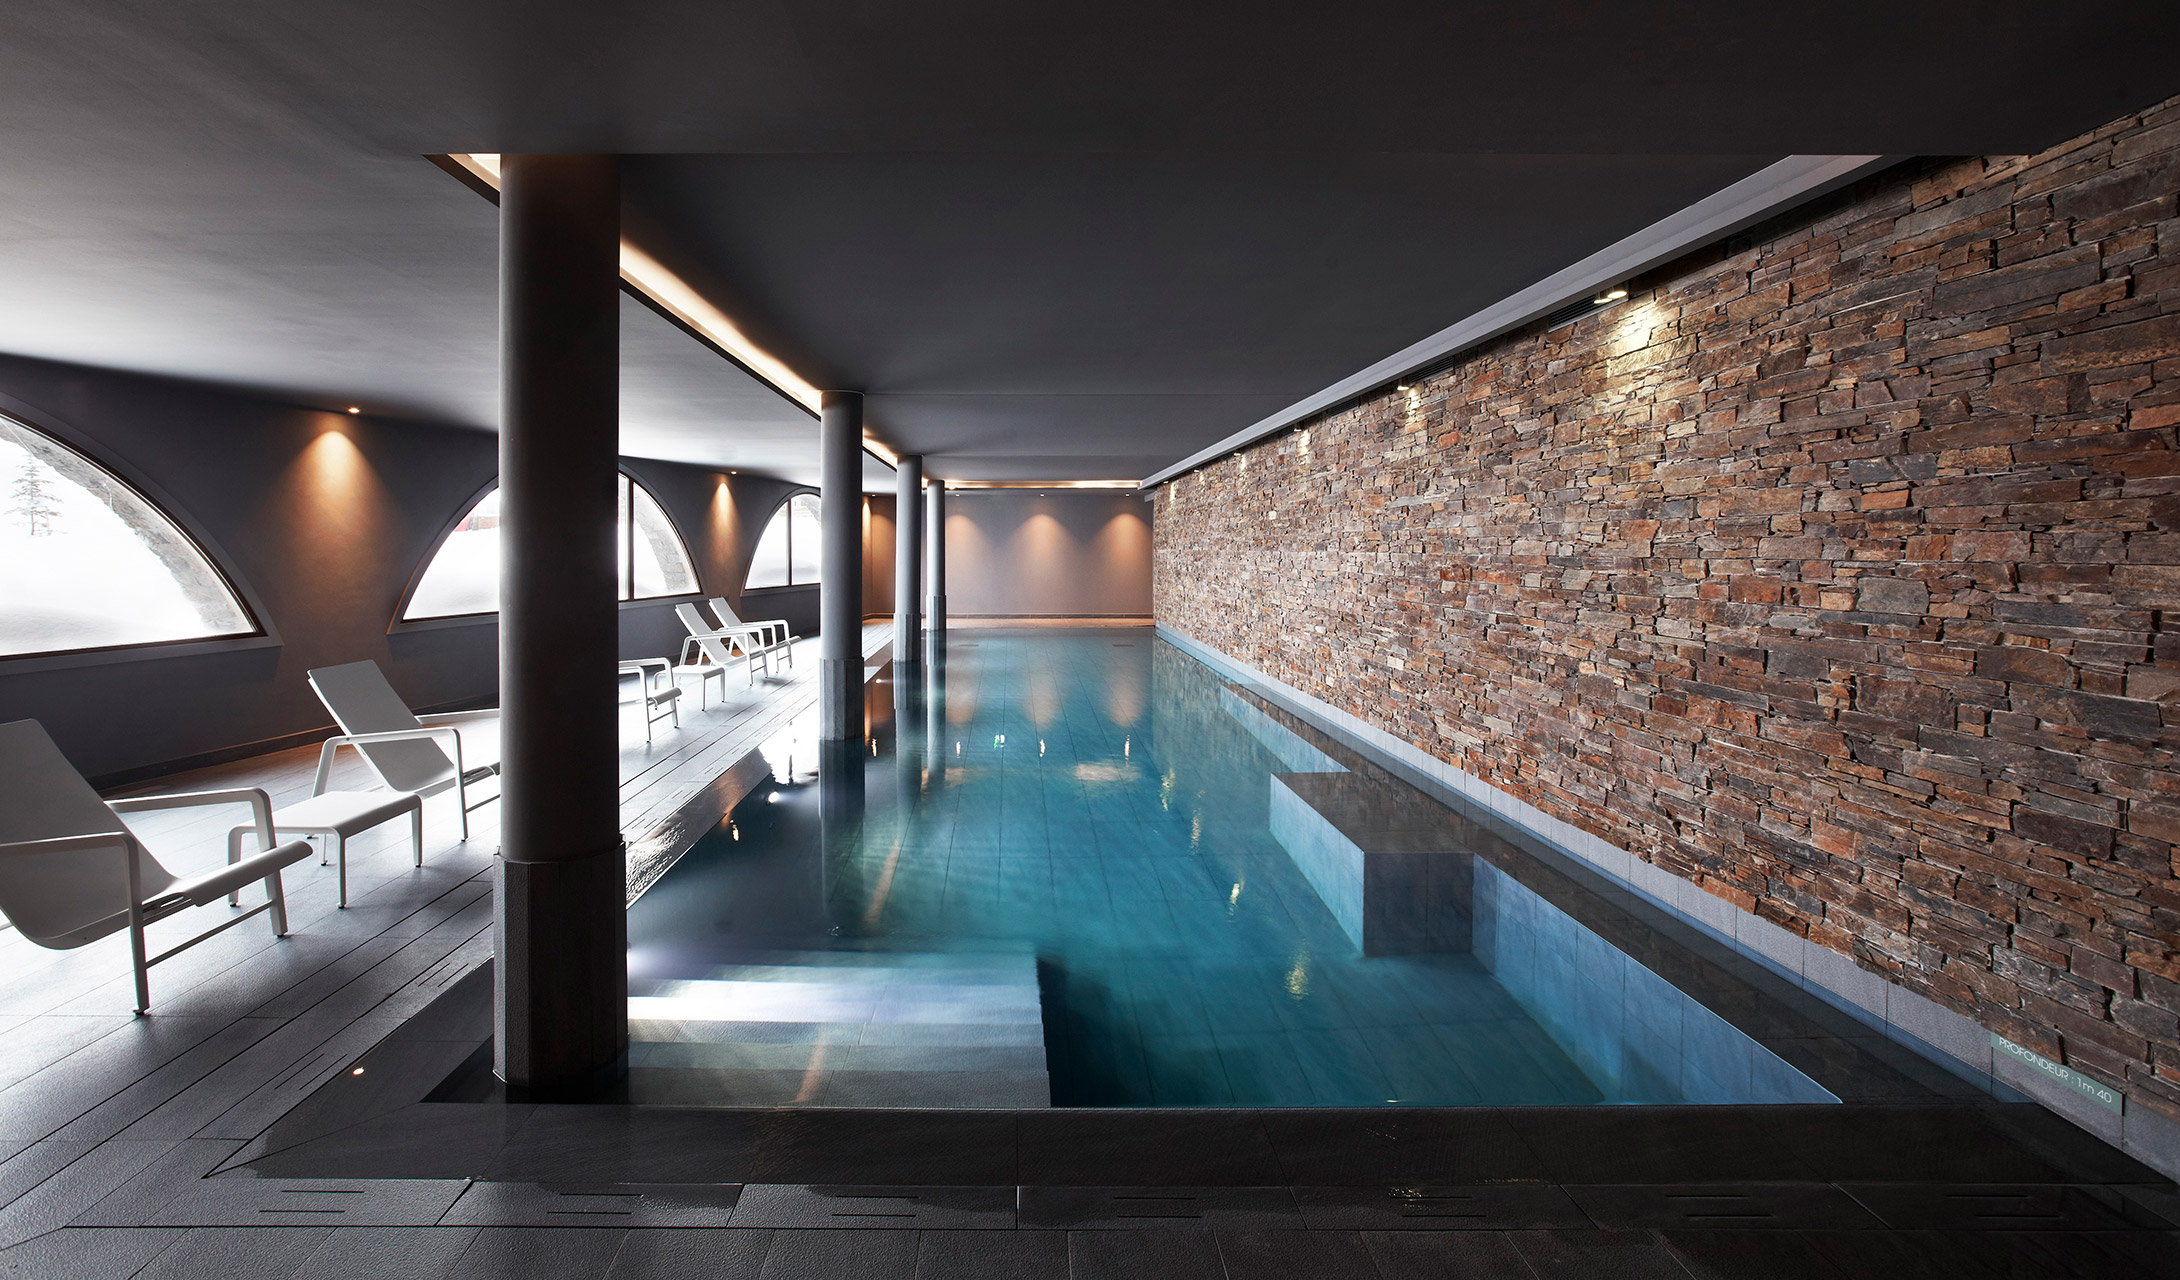 Le val thorens val thorens france design hotels for Design hotel le cinema